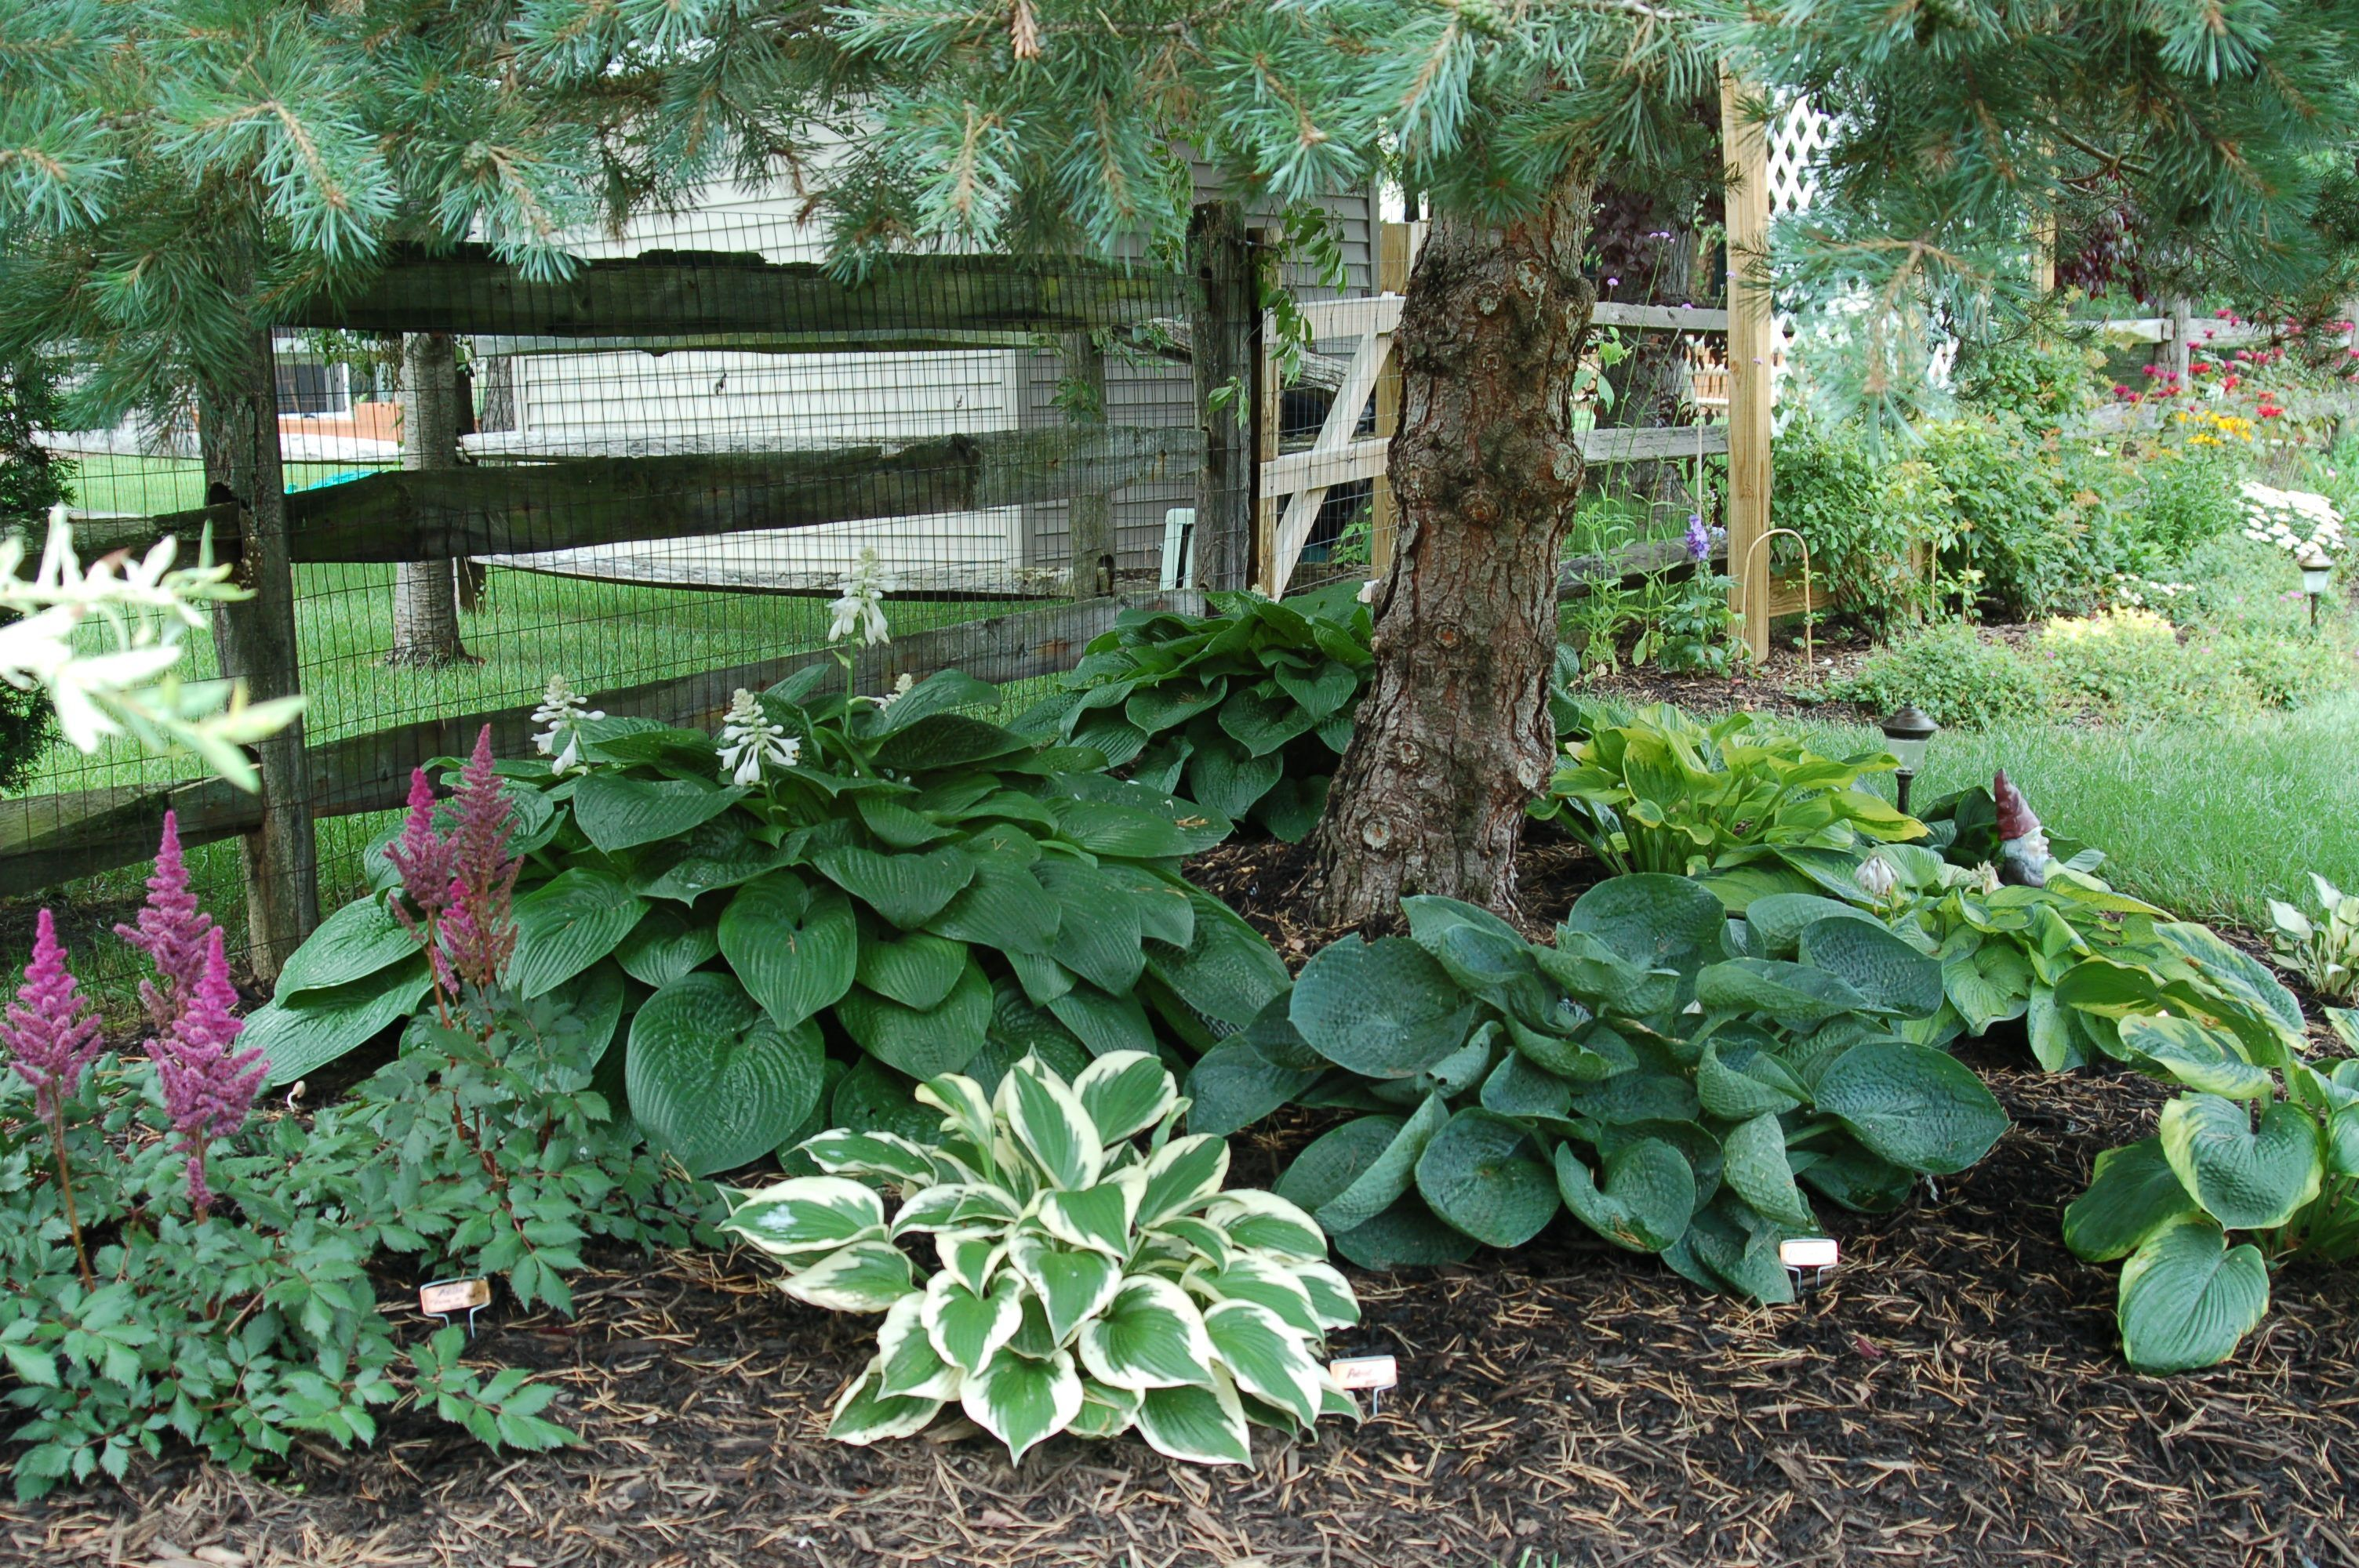 Hostas Under Pine Tree Garden Landscape Inspirations Landscaping What Grows Trees Ground Co Garden Ideas Under Trees Landscaping Trees Landscaping Around Trees